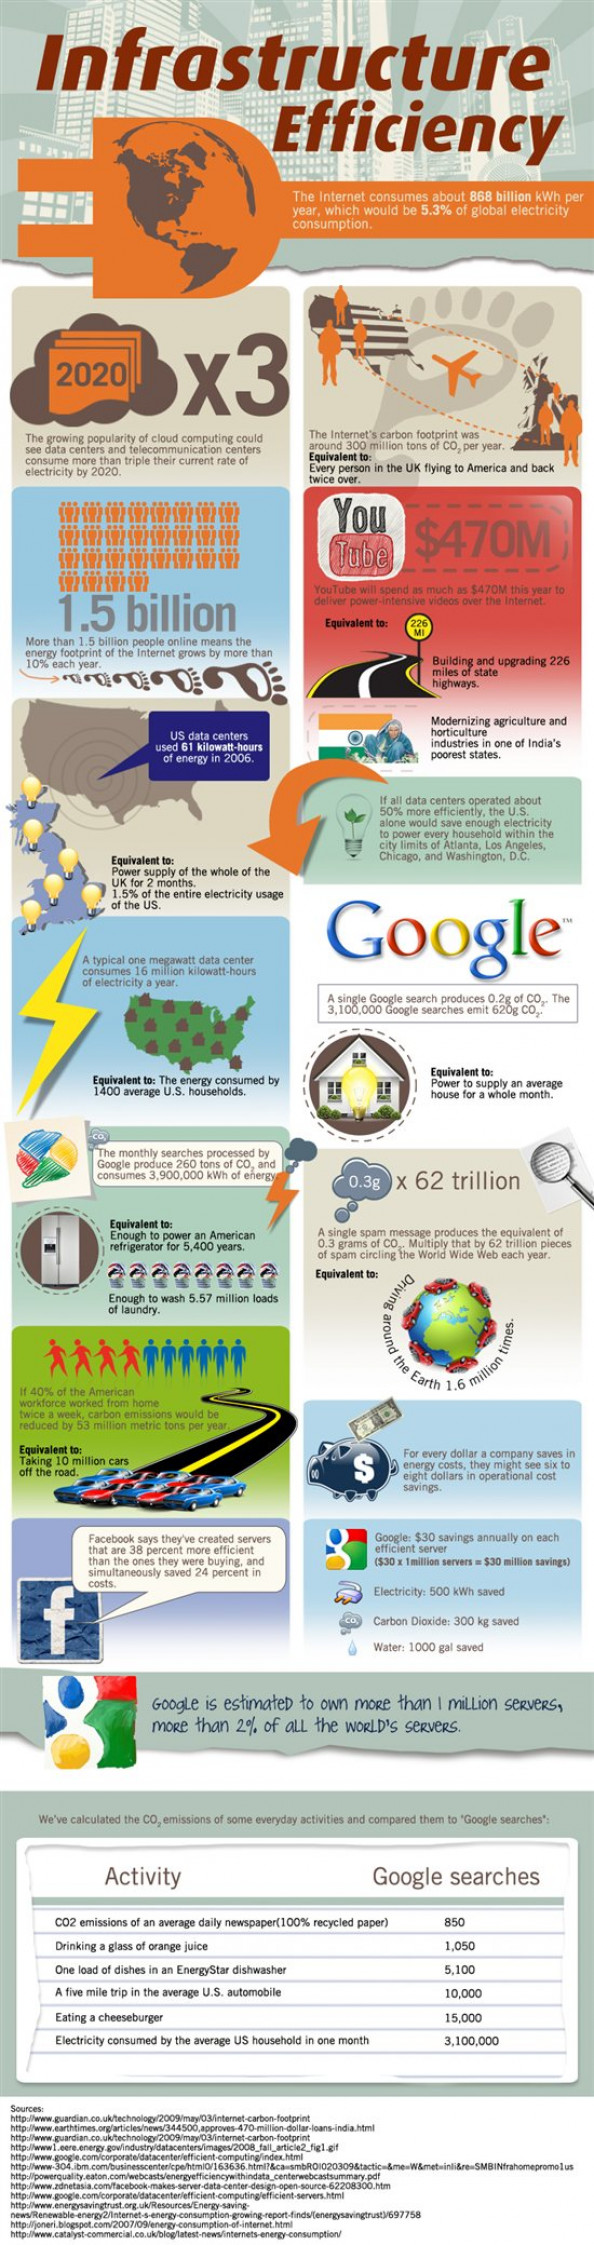 Data Centers That Shrink Corporate Carbon Footprints Infographic